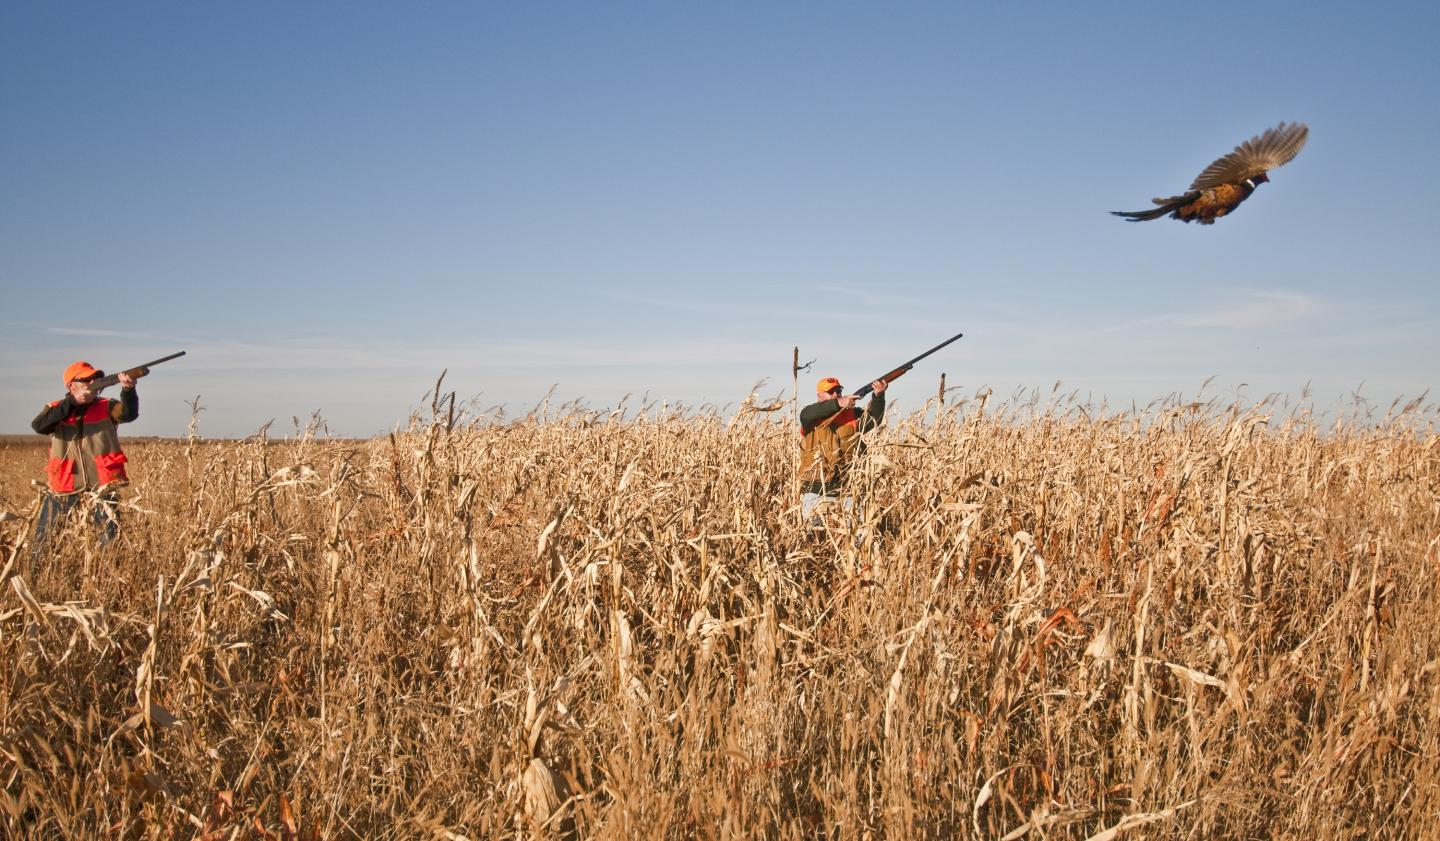 Pheasant Hunting - South Dakota - Places to See: What to See